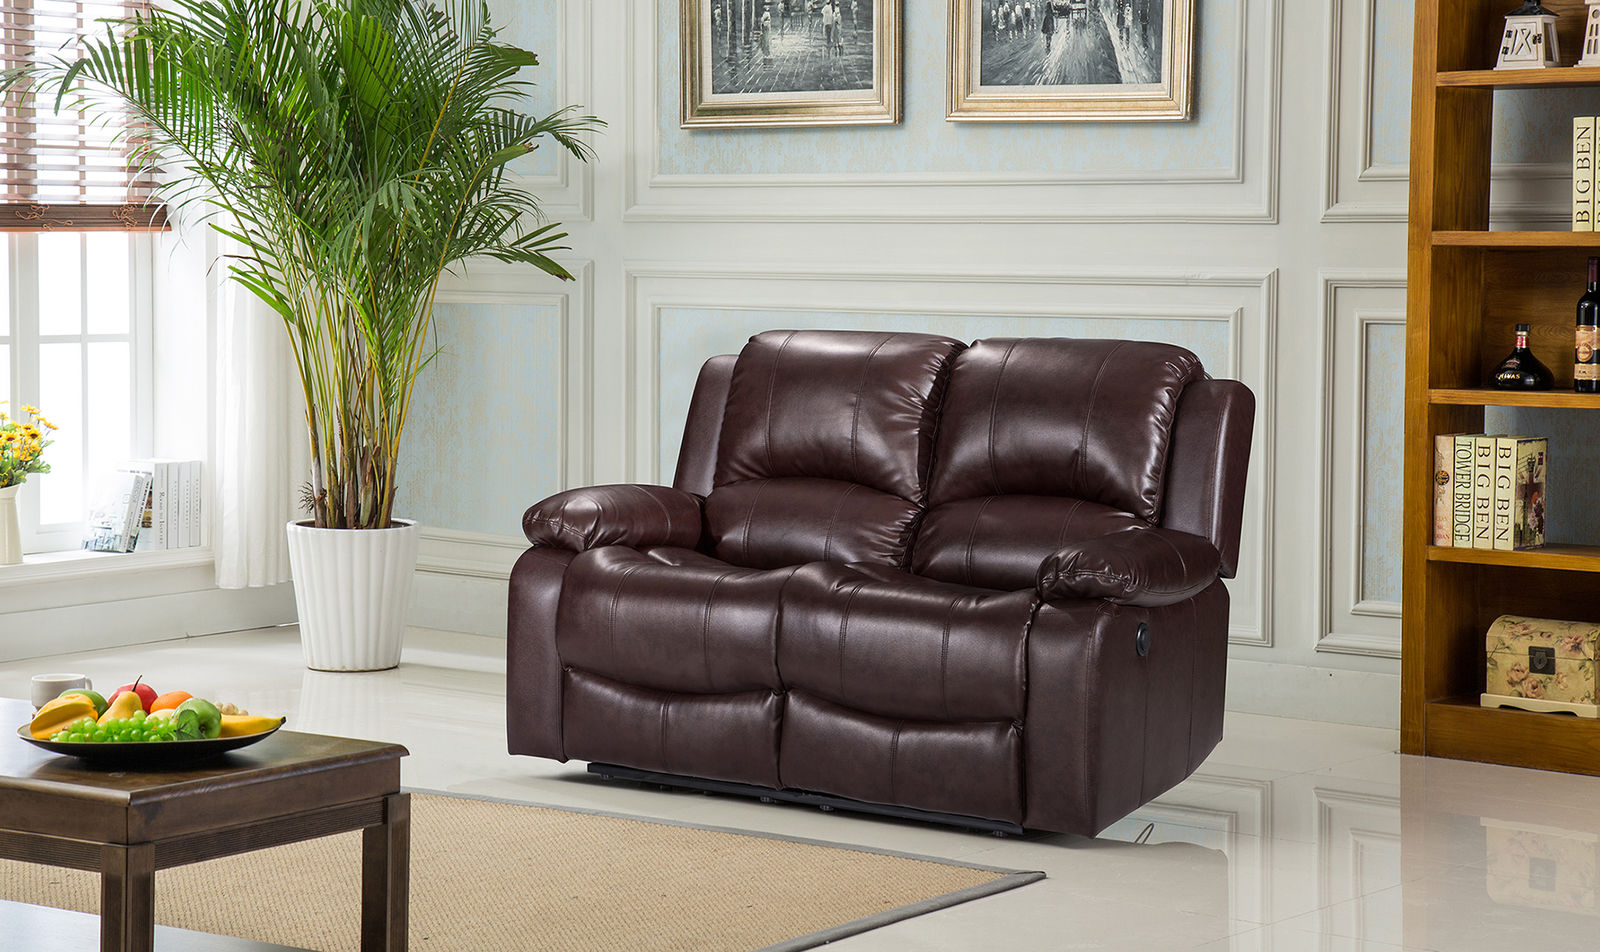 Fantastic New Valencia 2 Seater Leather Recliner Sofa Brown Alphanode Cool Chair Designs And Ideas Alphanodeonline